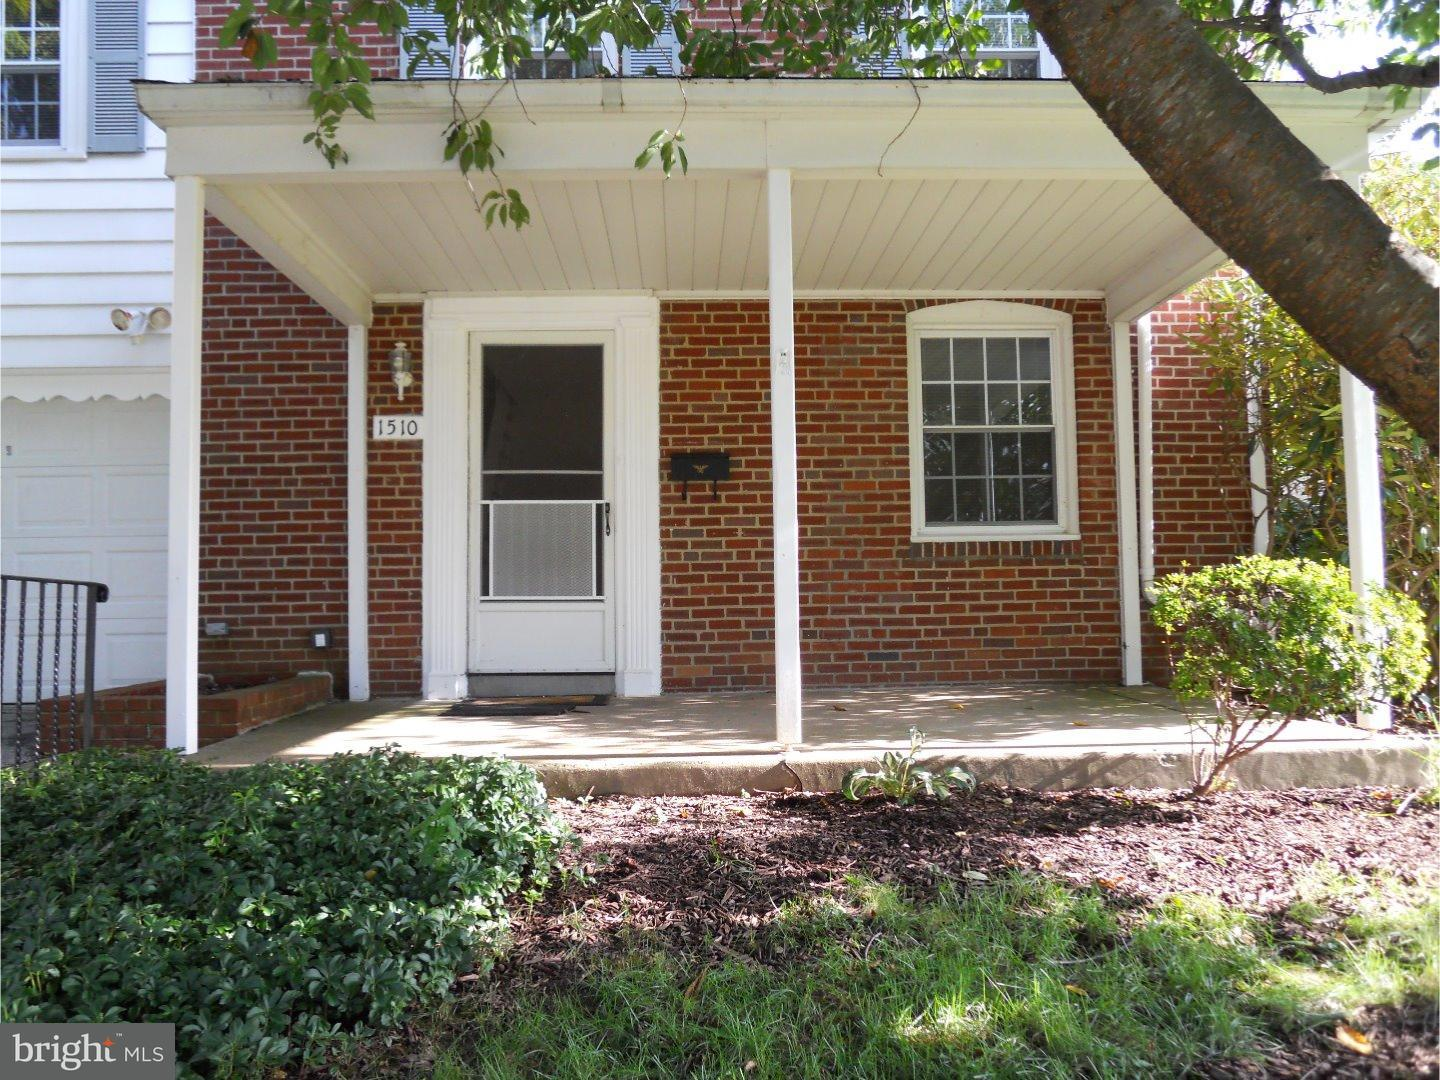 1510 MELROSE AVE, HAVERTOWN - Listed at $2,600, HAVERTOWN